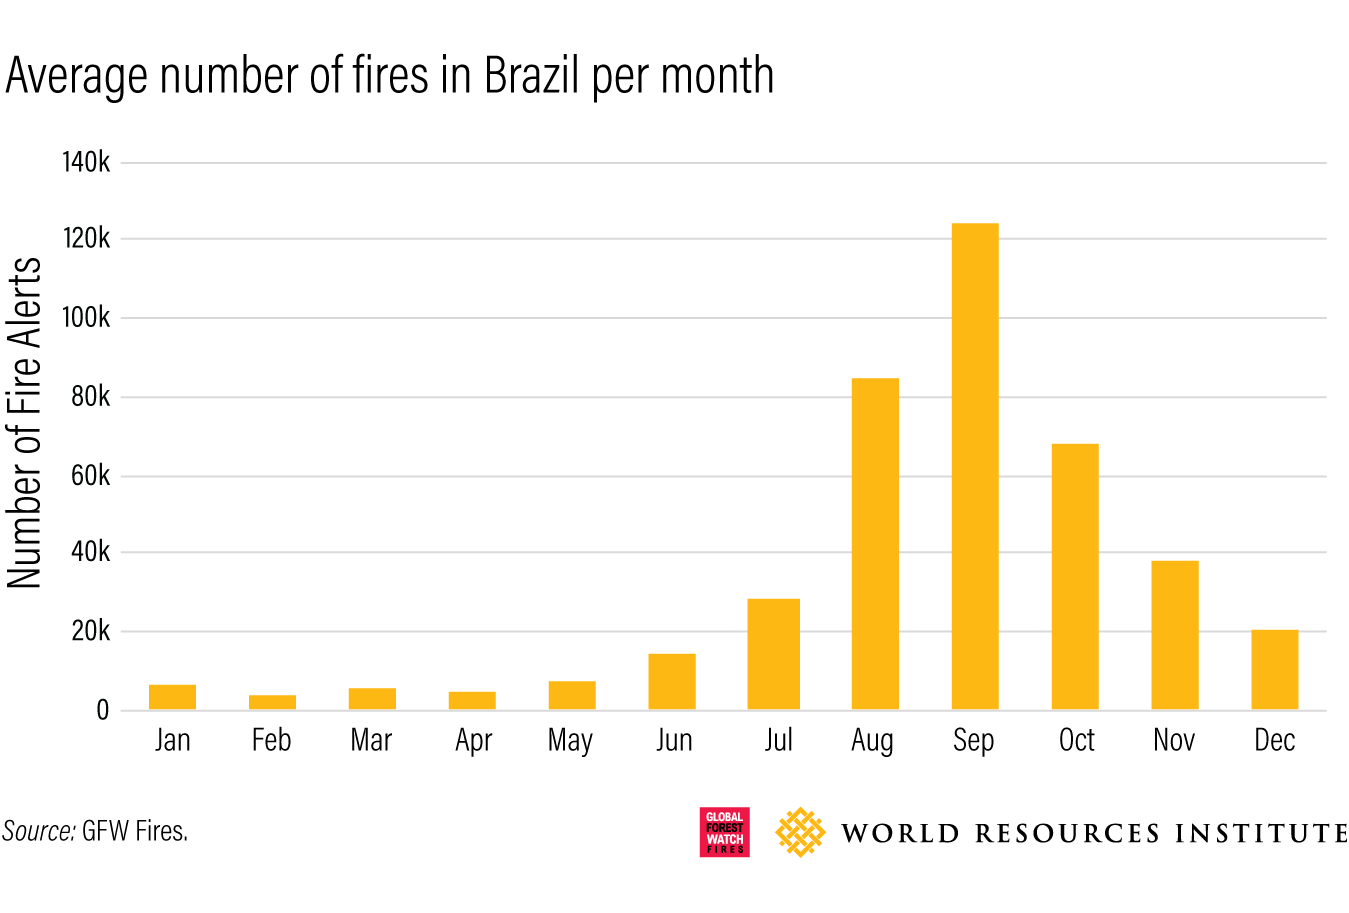 Average number of fires in brazil by month